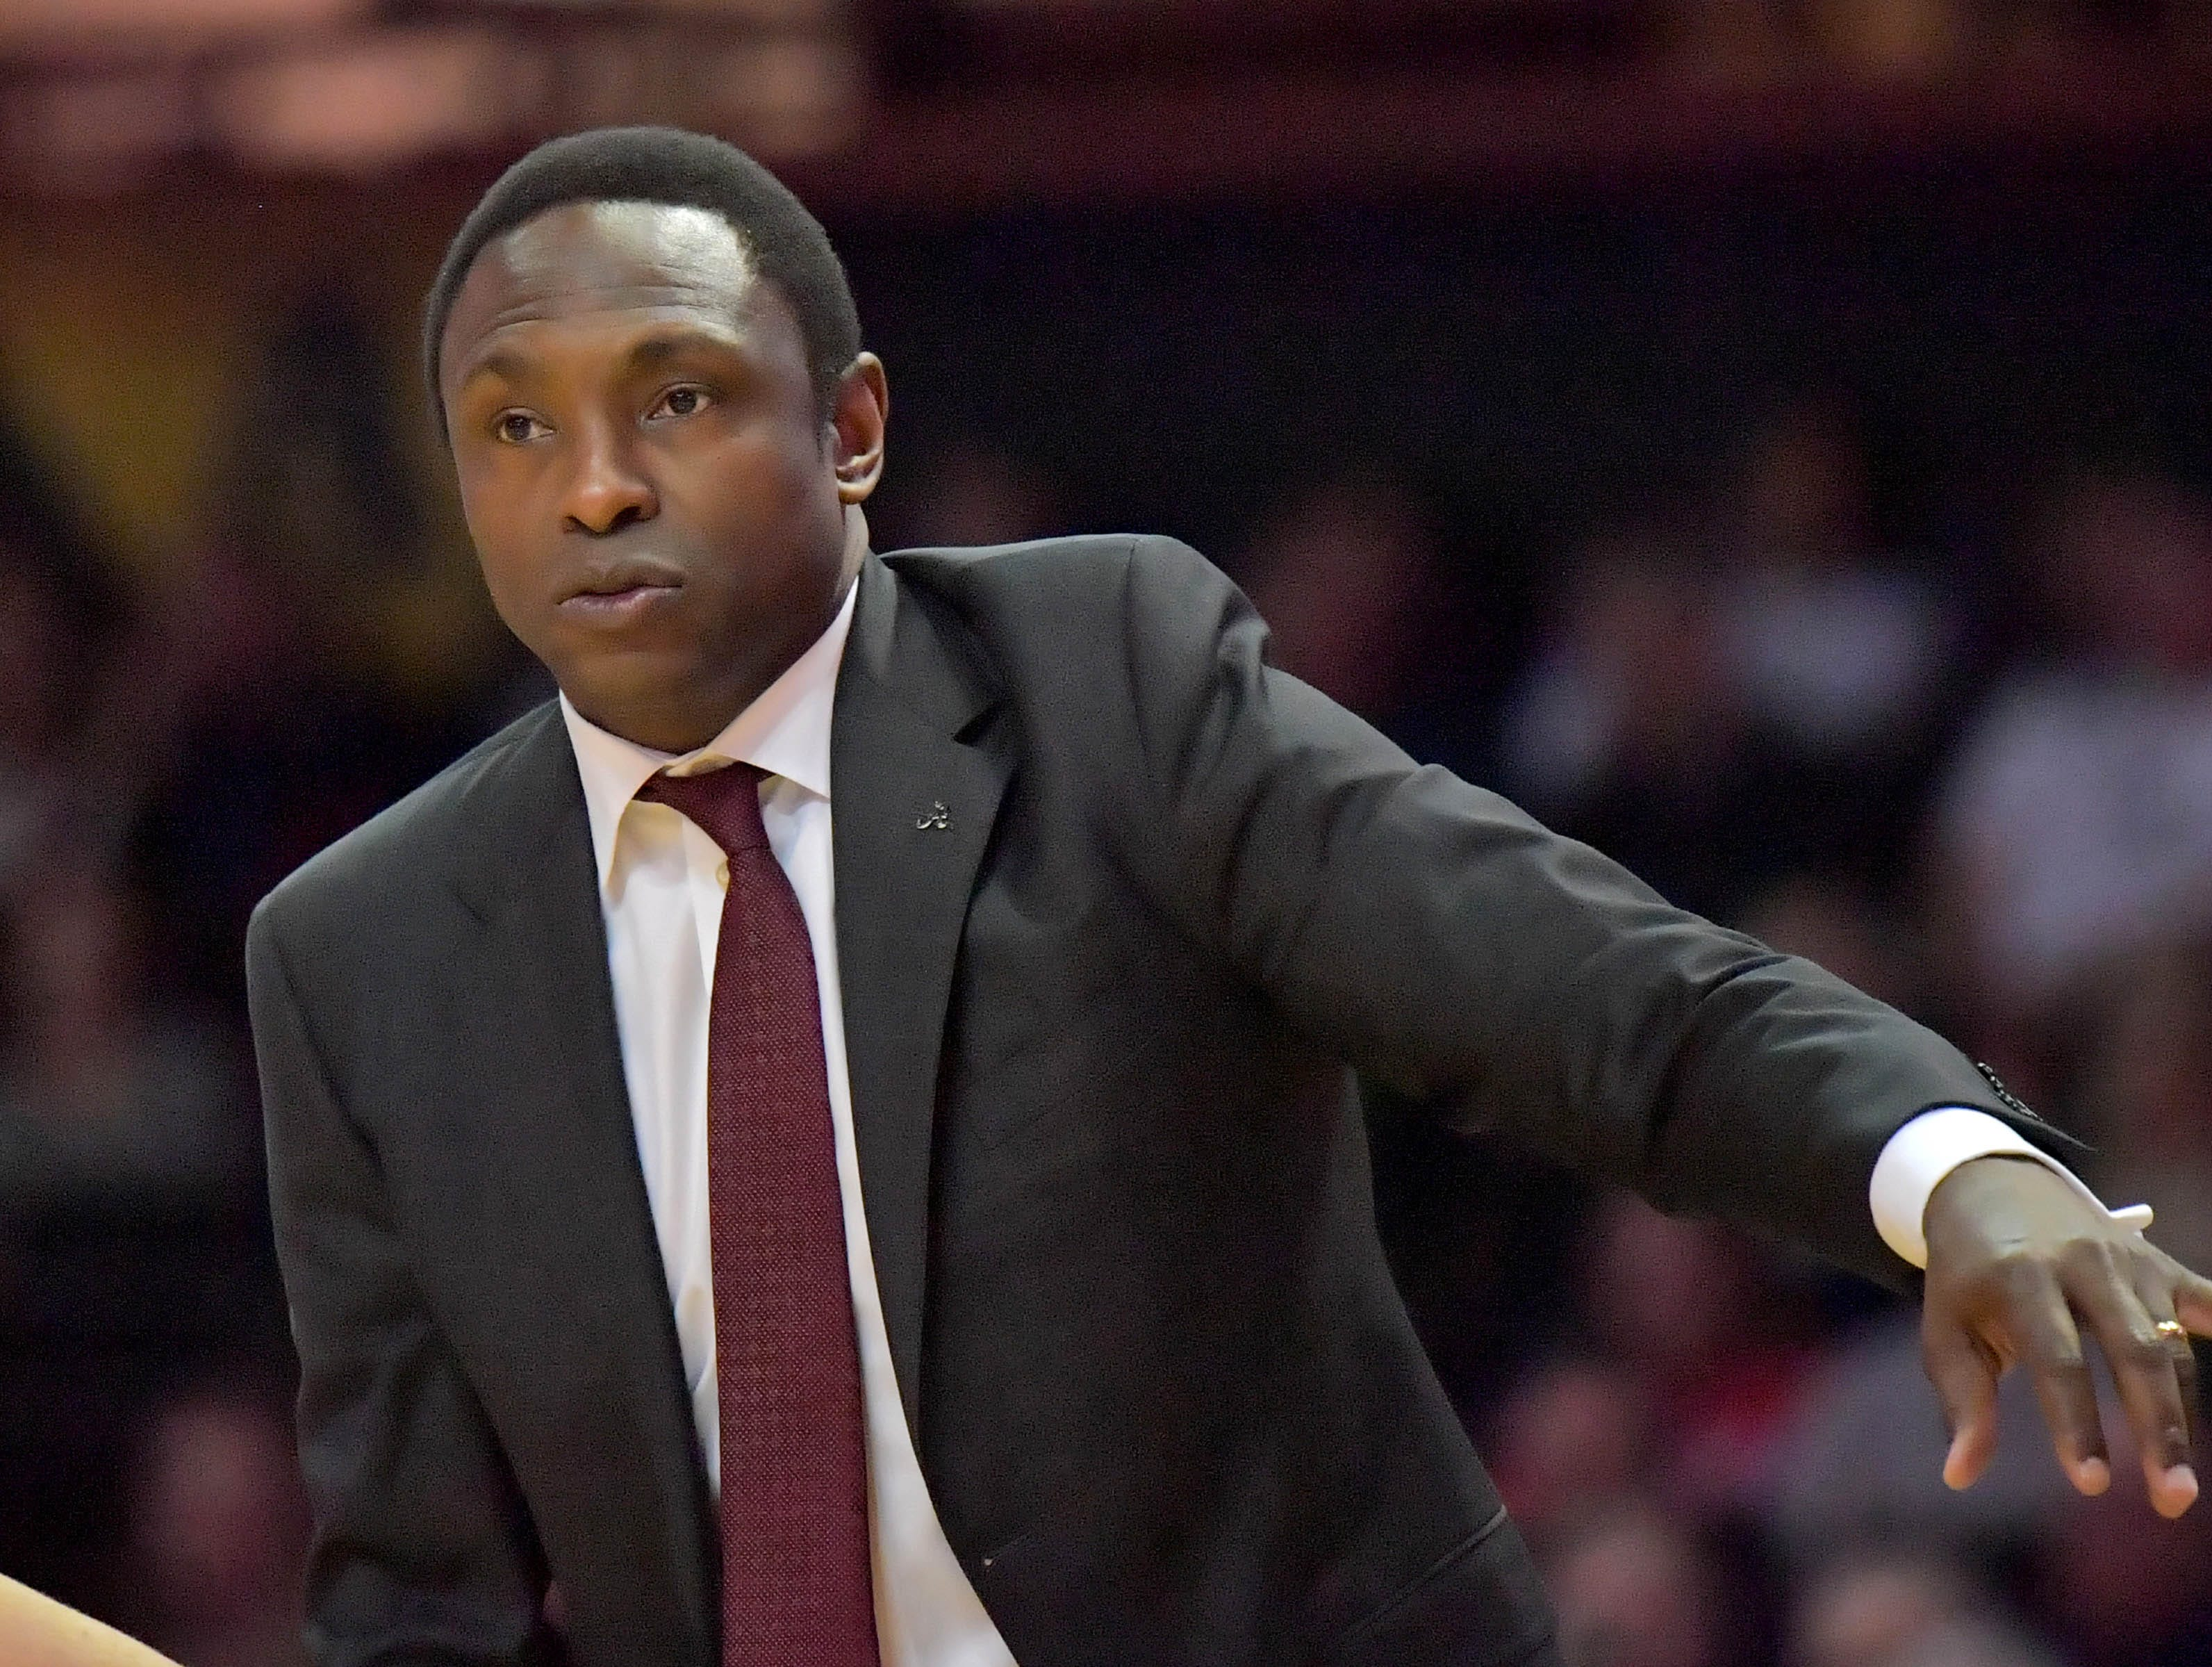 Feb 9, 2019; Nashville, TN, USA; Alabama Crimson Tide head coach Avery Johnson during the second half against the Vanderbilt Commodores at Memorial Gymnasium. Alabama won 77-67. Mandatory Credit: Jim Brown-USA TODAY Sports